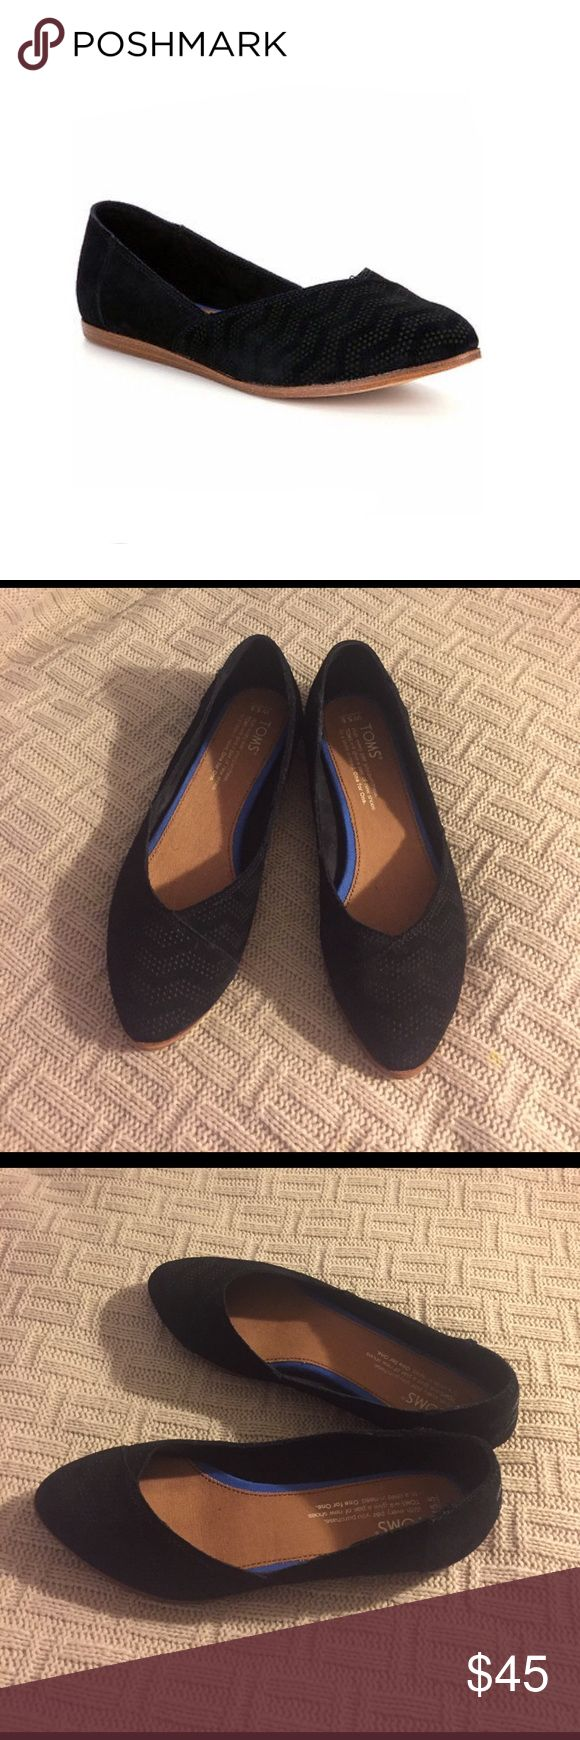 Toms Jutti Chevron Flats Beautiful flats and only worn once. Love these shoes, but they don't fit me 😔 TOMS Shoes Flats & Loafers